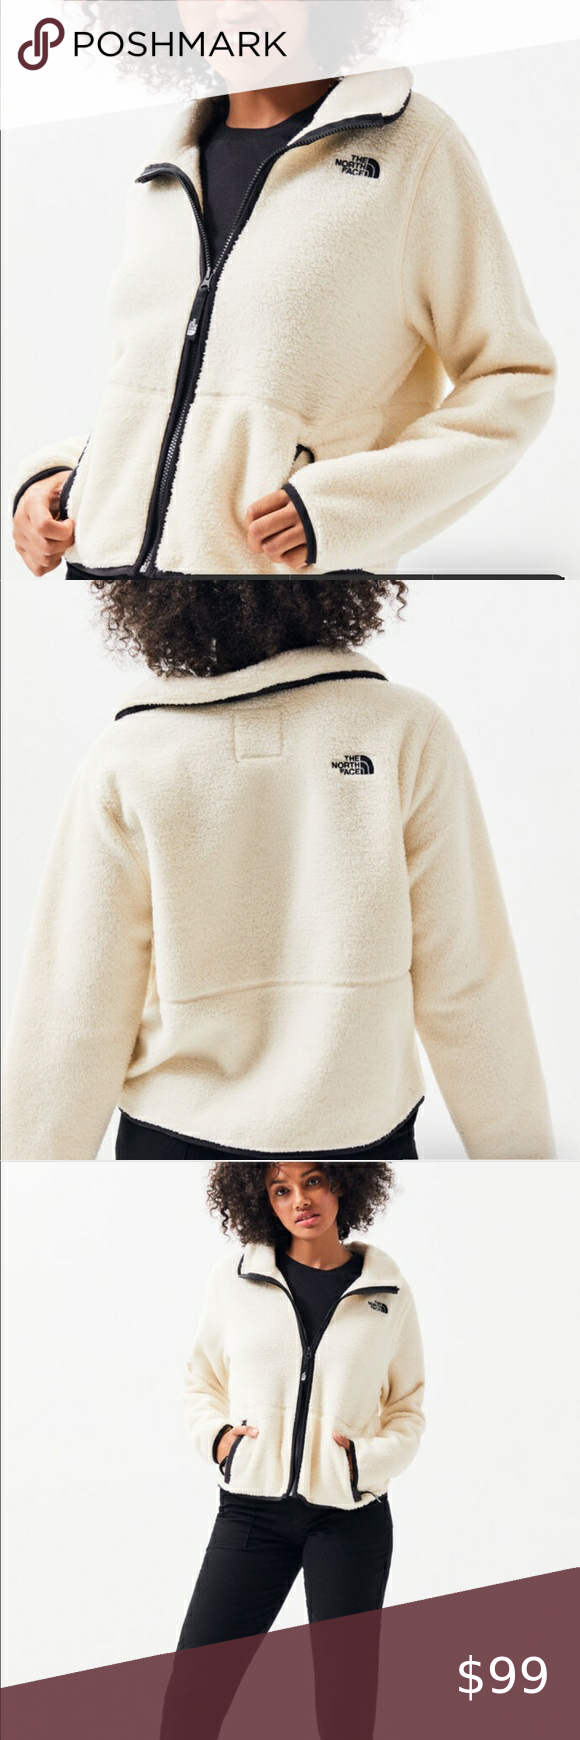 North Face Dunravel Sherpa Cropped Jacket New Xl Crop Jacket White Sherpa Jacket North Face Jacket [ 1740 x 580 Pixel ]